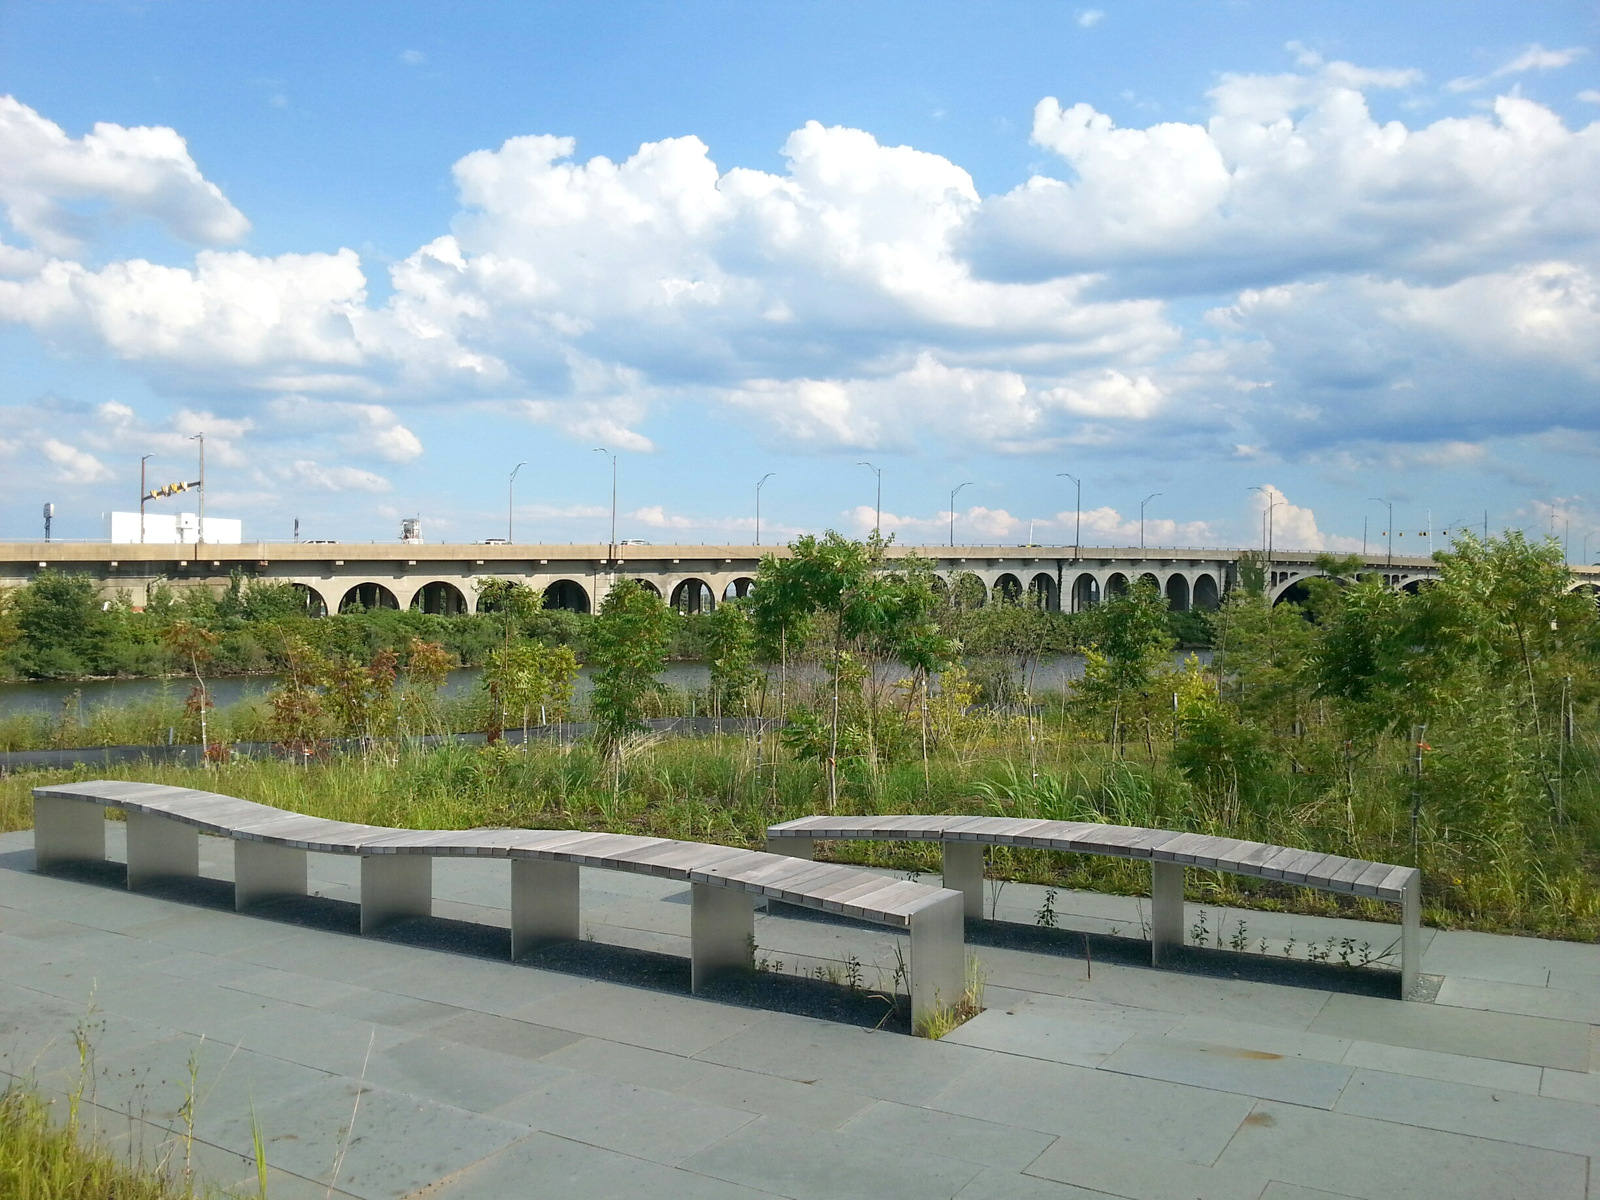 Weeds grow under benches at the fenced-off park constructed with public funds. In background is the Hanover Street Bridge. (Photo by Ed Gunts)